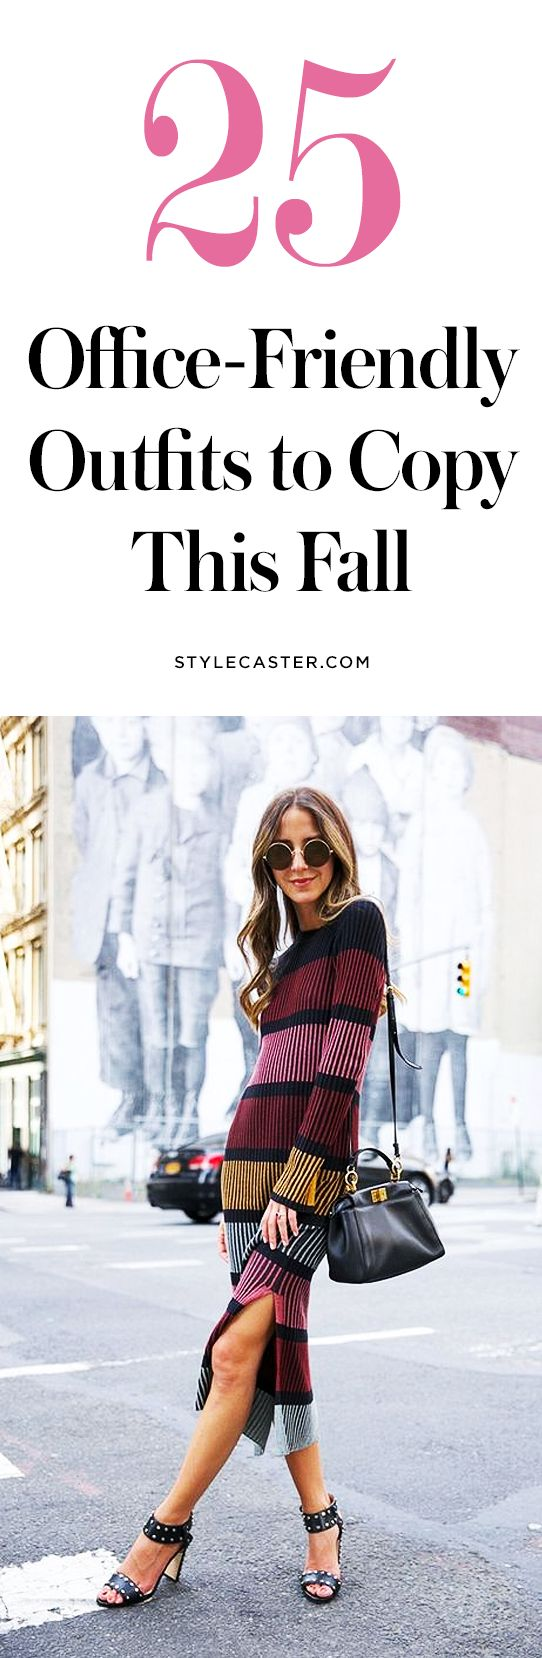 25 work outfits to copy this fall | office attire | fall / winter work outfit ideas | @stylecaster